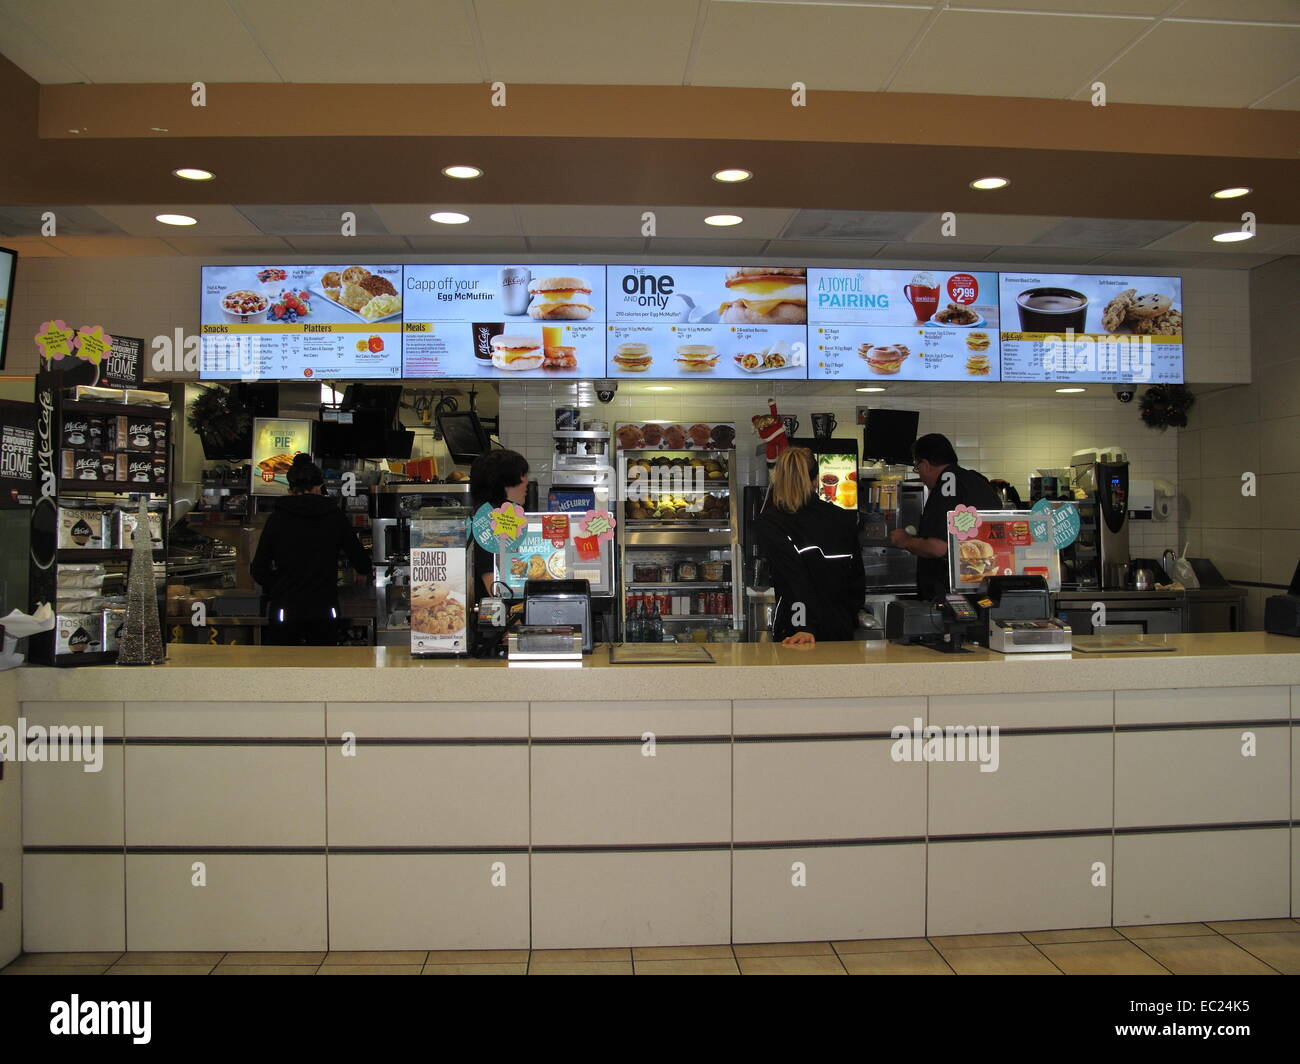 The interior order counter at a McDonald's Restaurant showing the breakfast menu - Stock Image